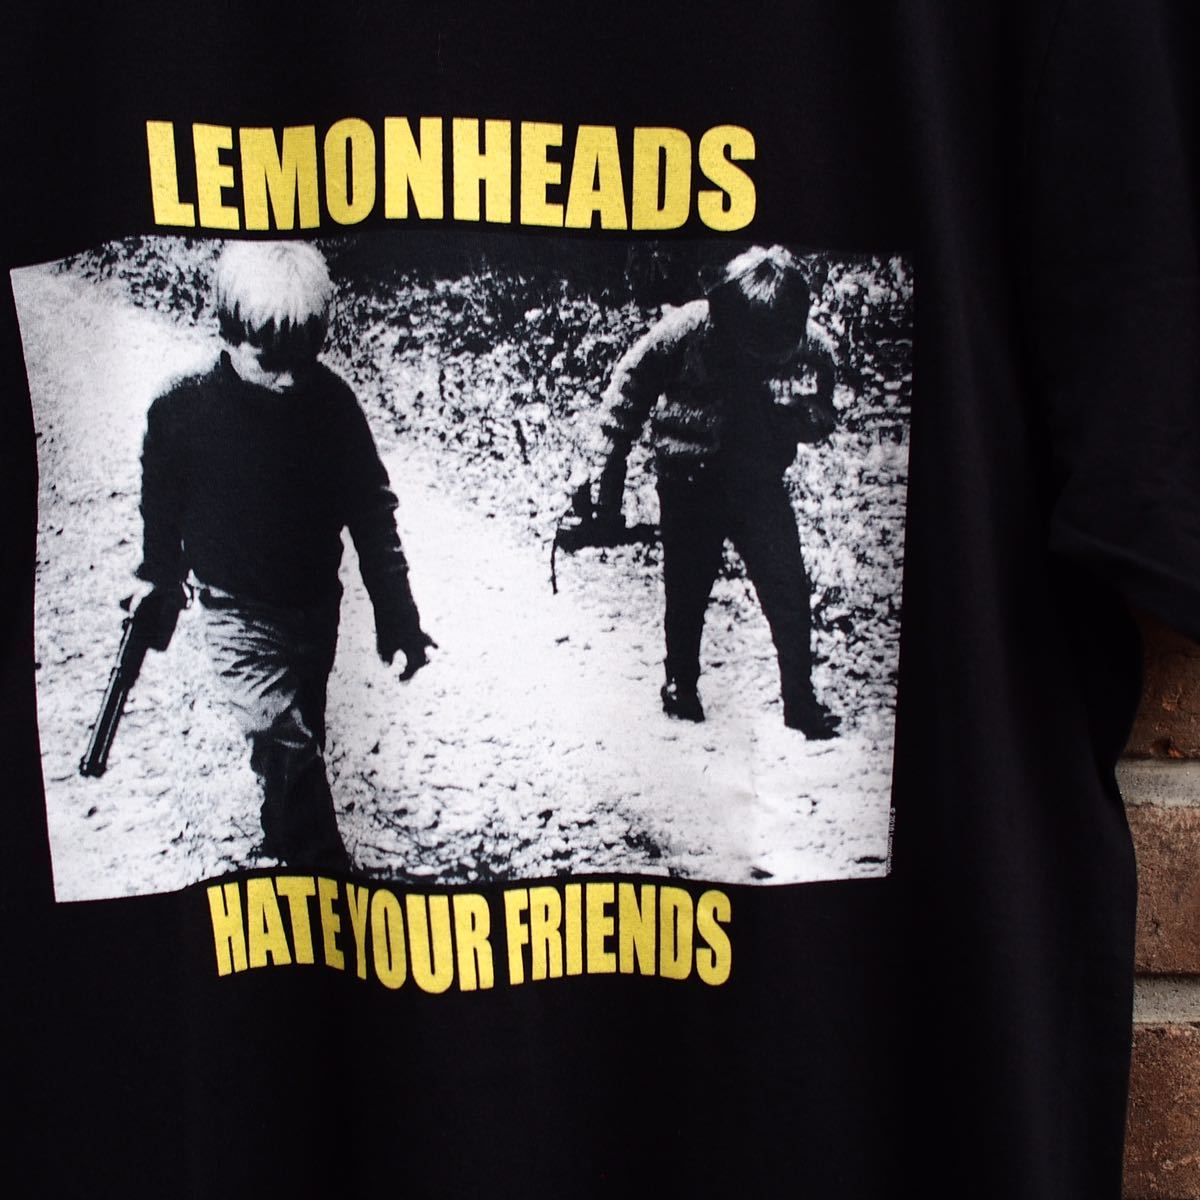 Official [The Lemonheads] Size M レモンヘッズ Tシャツ Nirvana Blur Sonic Youth oasis joy division Smiths Cure R.E.M. ビンテージ_画像2